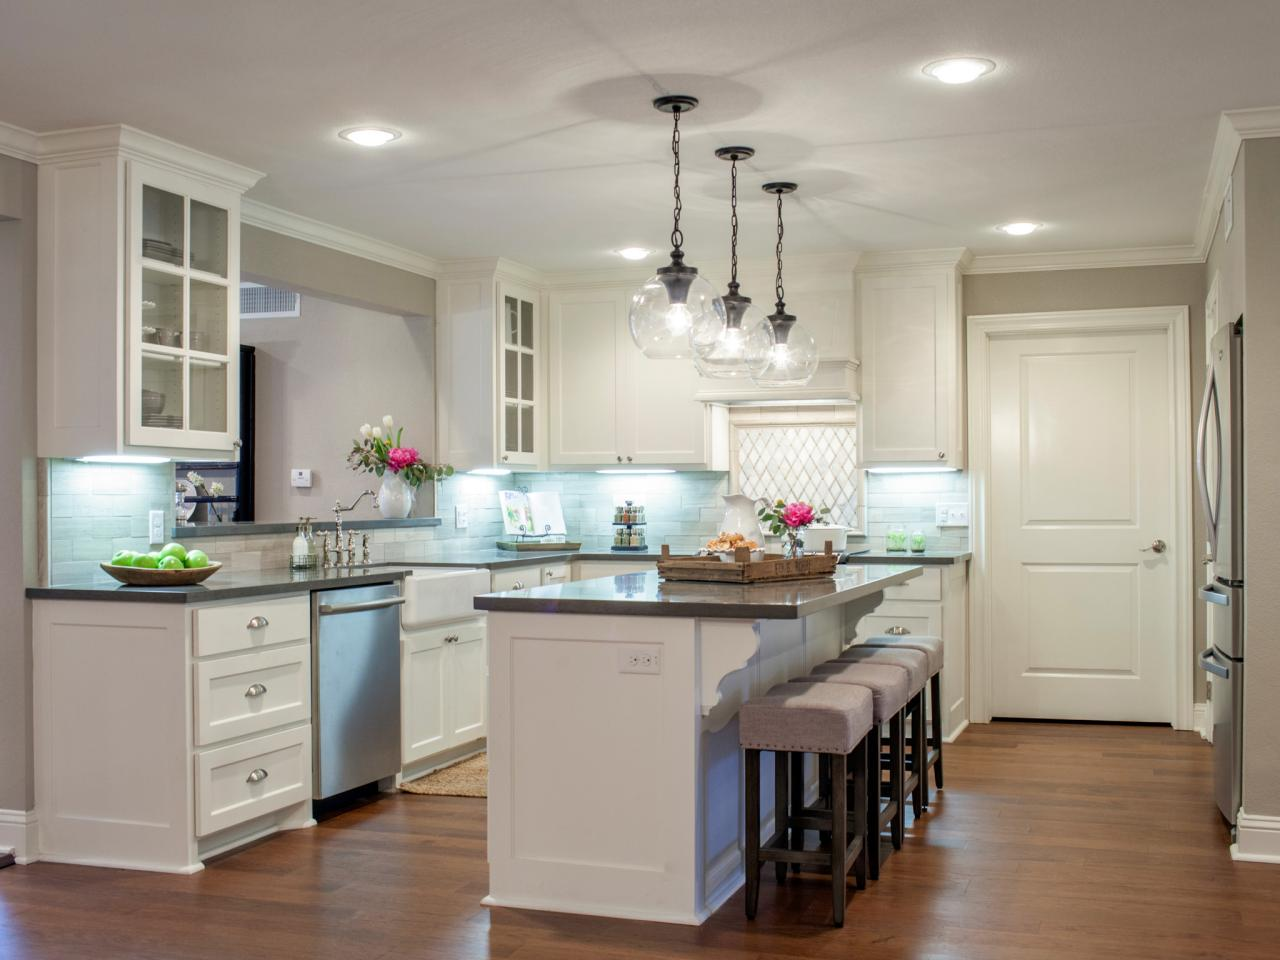 Re designing a new kitchen and need some inspiration check out these 10 perfect